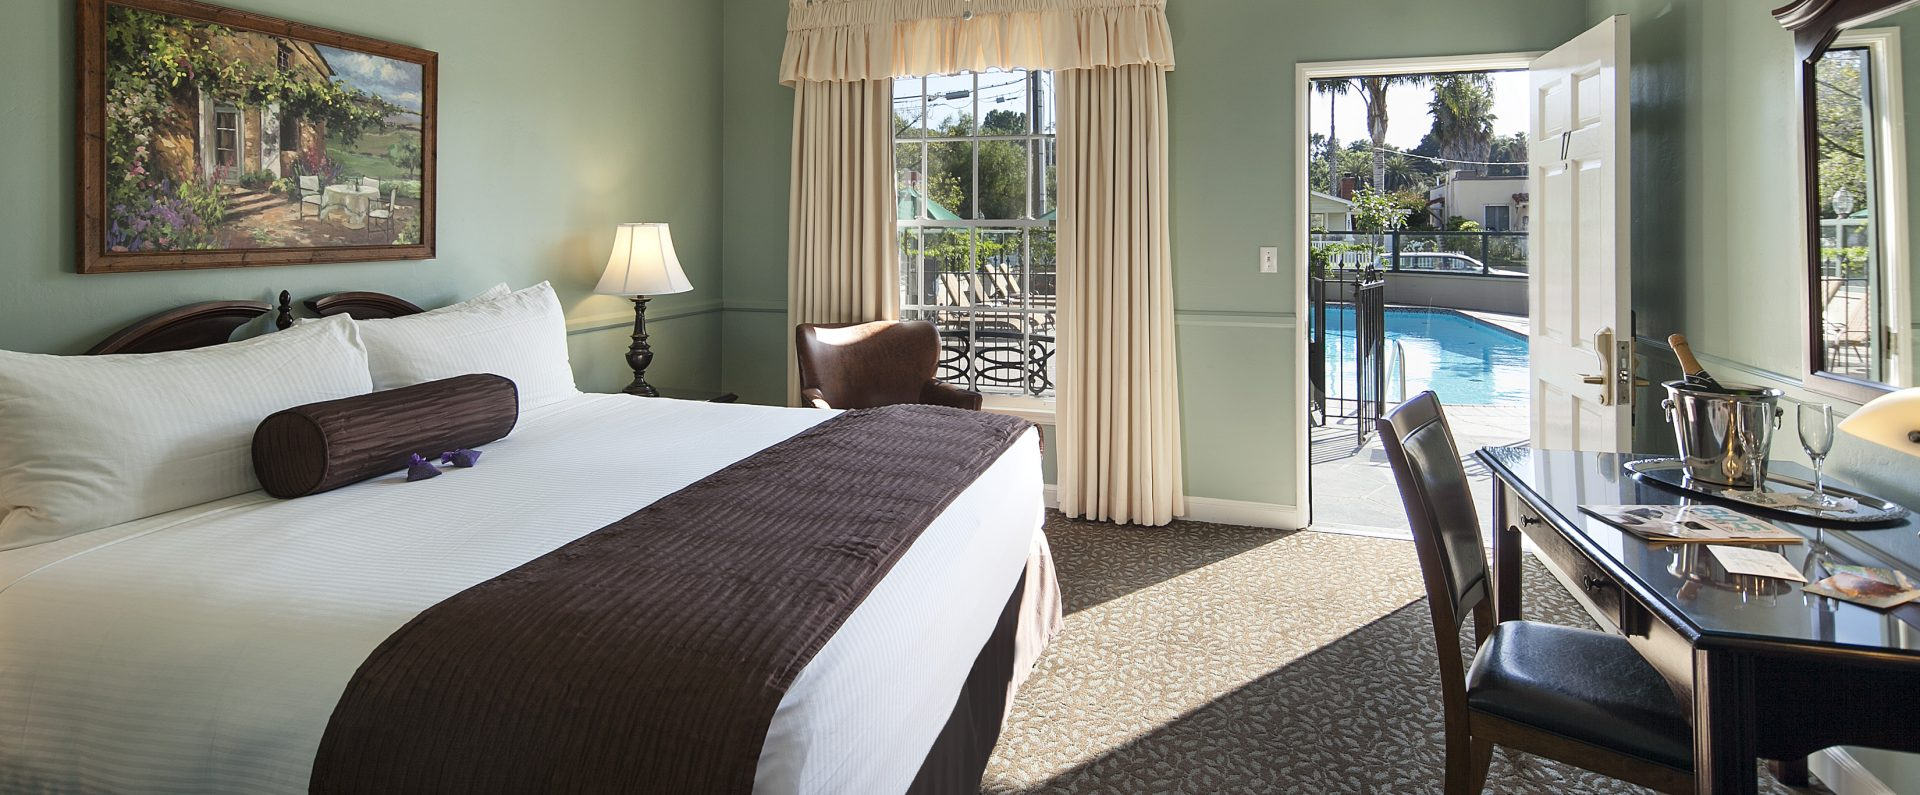 room in front of pool at Lavender Inn by the Sea